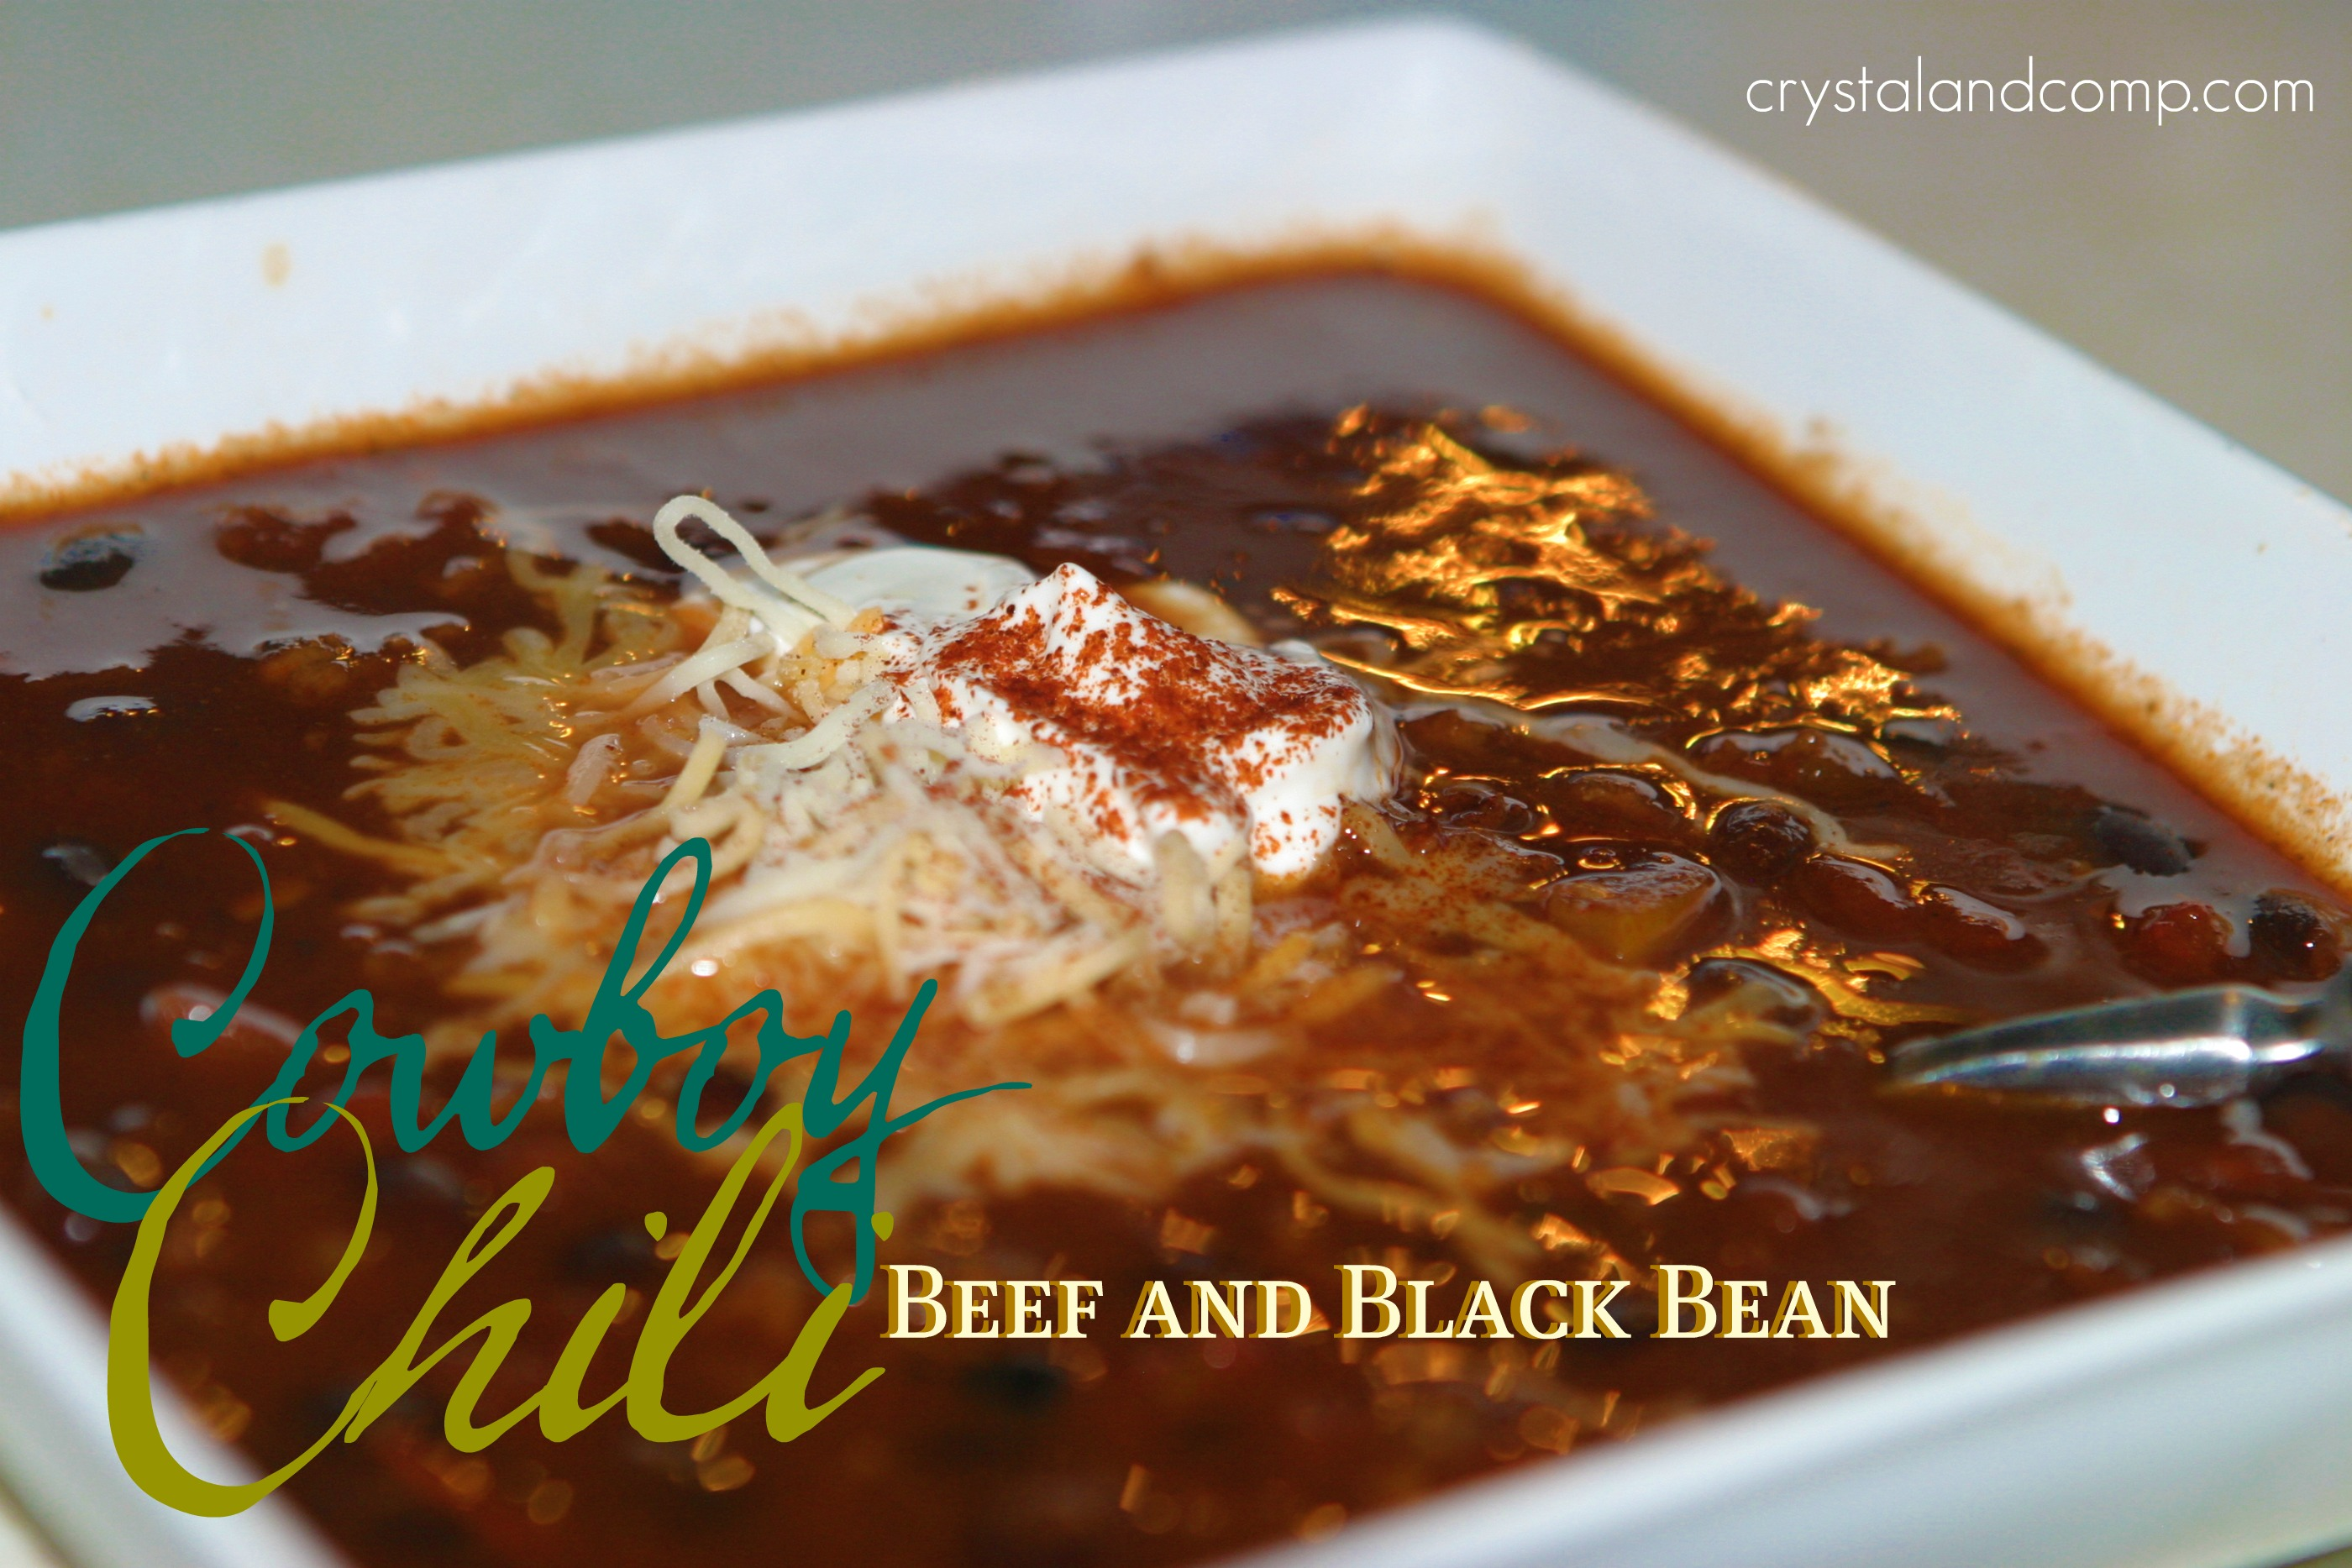 Chili Recipe: Cowboy Beef and Black Bean Chili | CrystalandComp.com